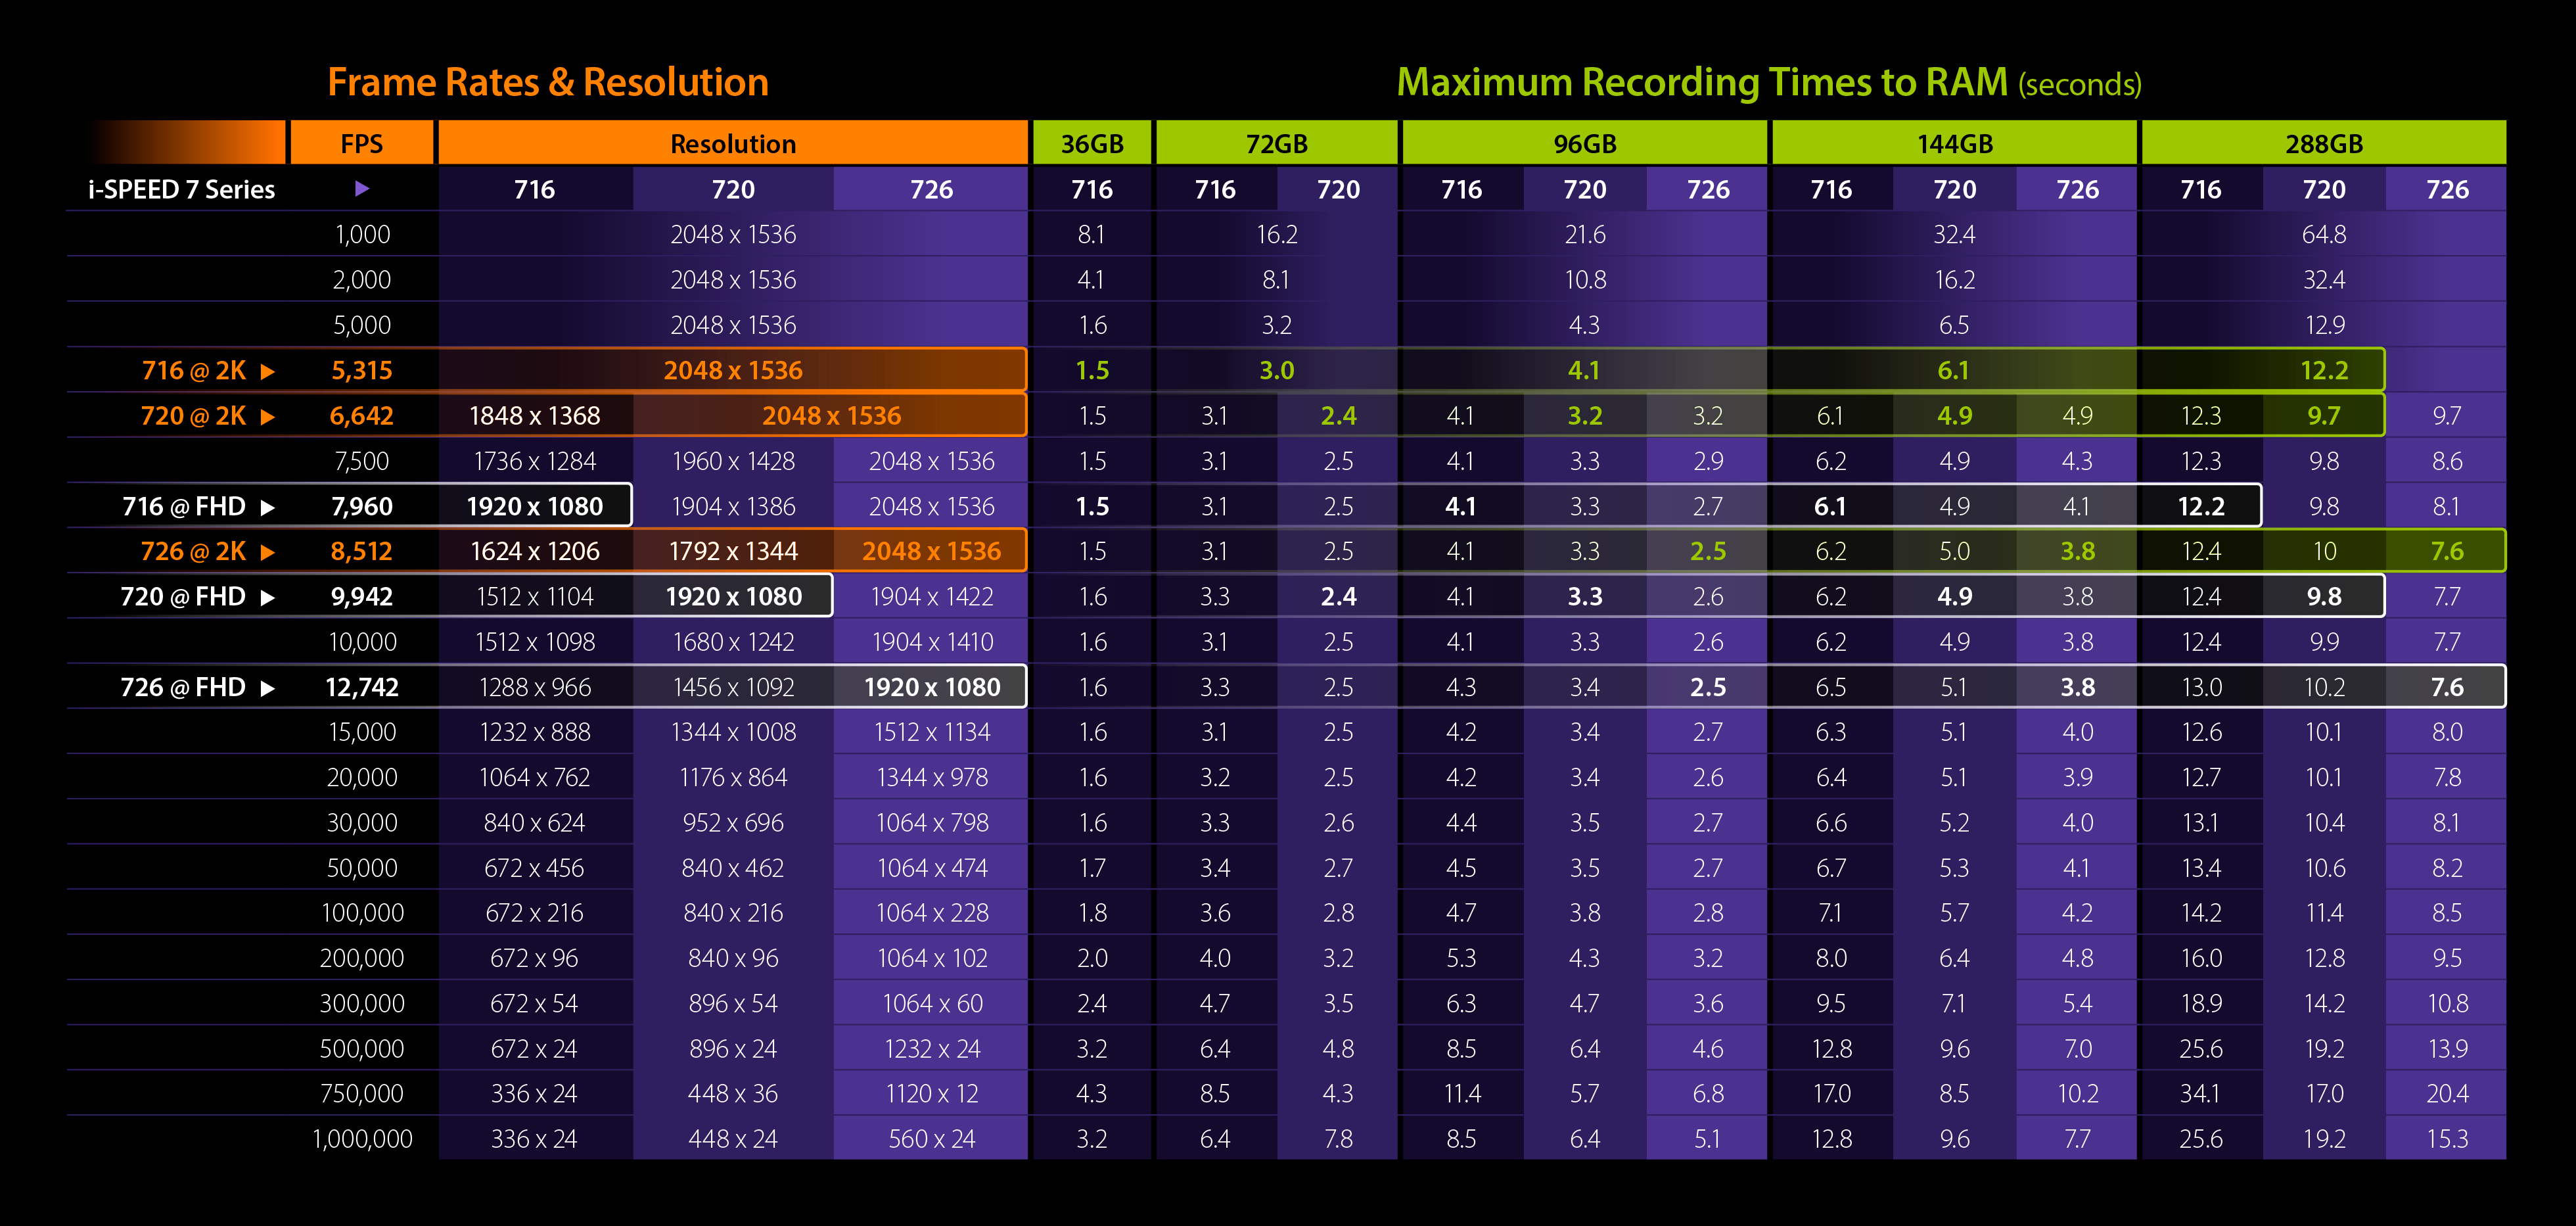 i-SPEED 7 Series Frame Rates, Resolutions & Recording Durations to RAM.